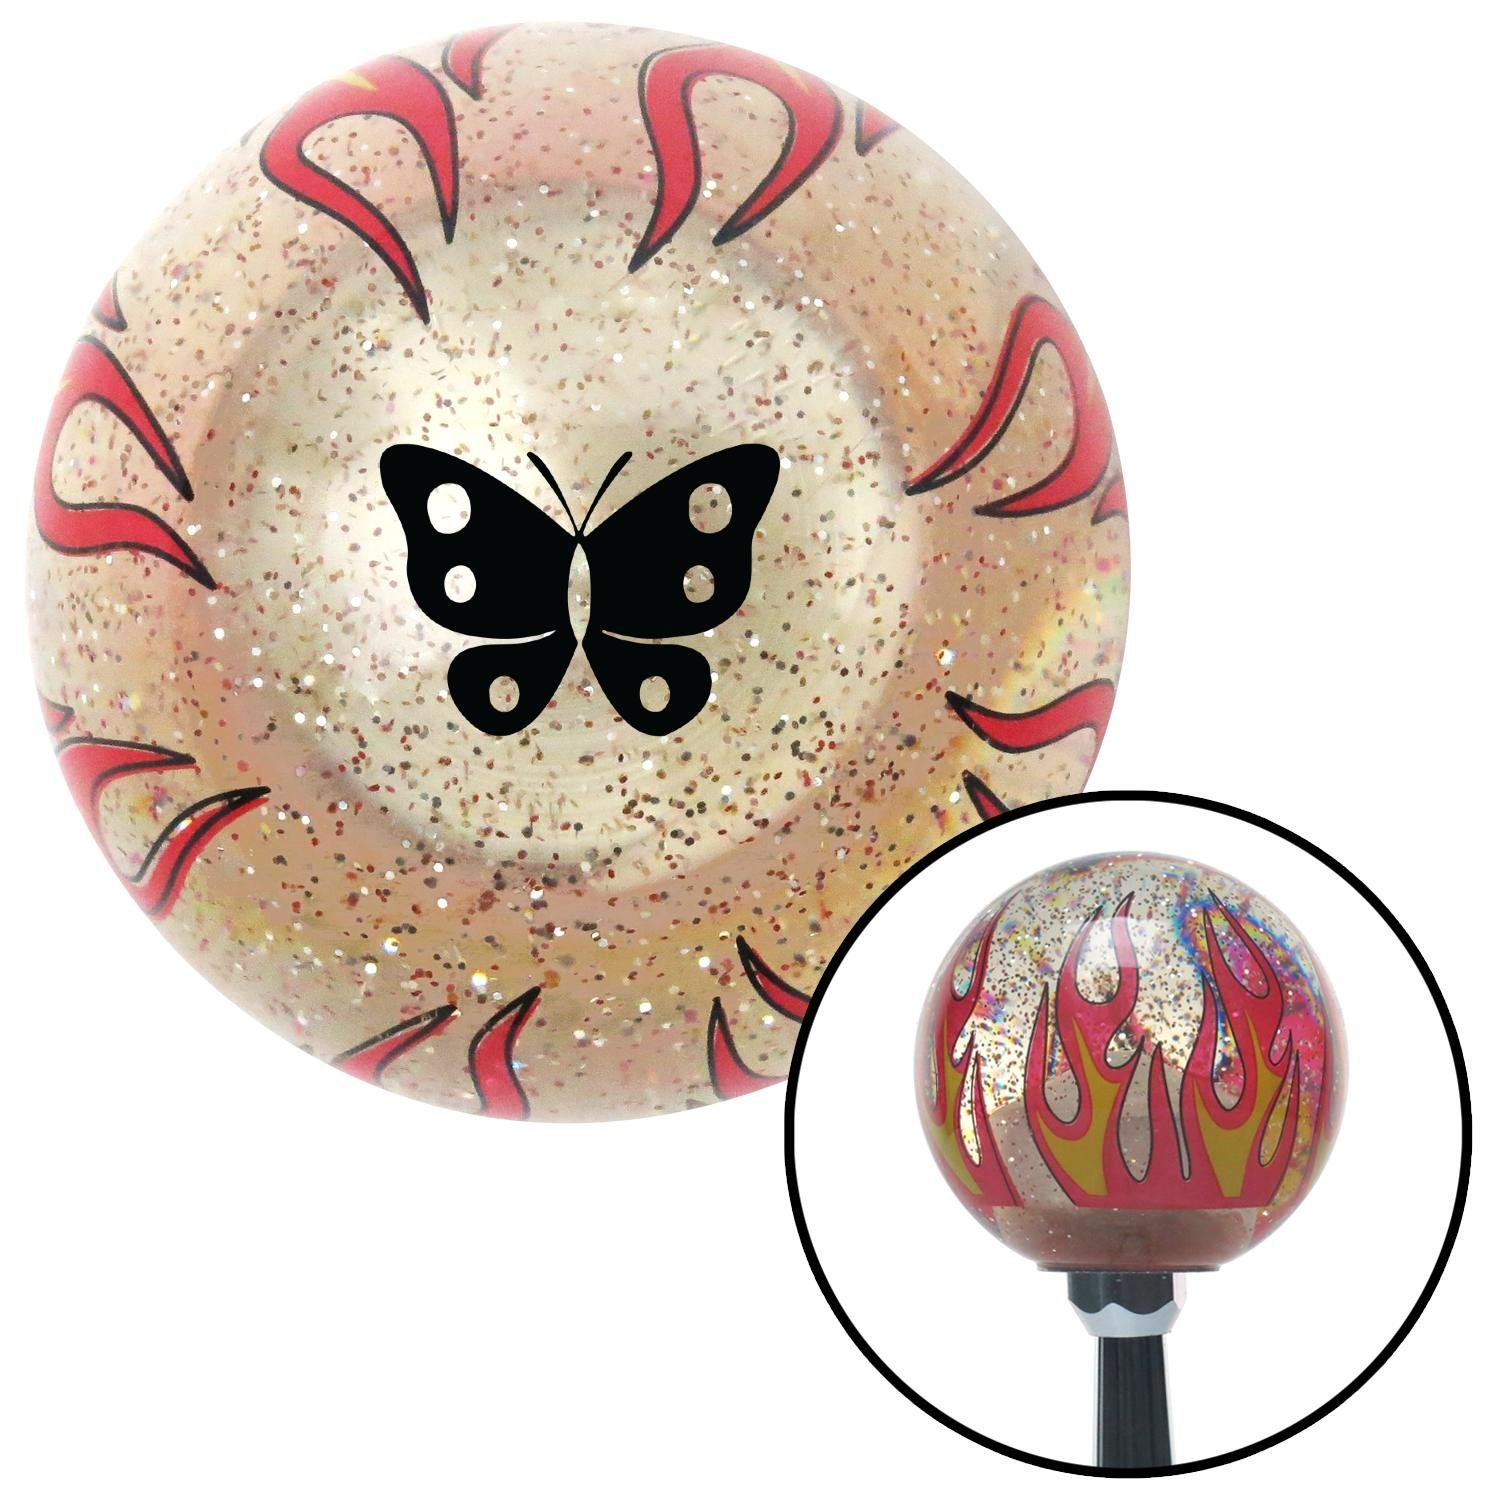 American Shifter 295145 Shift Knob Black Classic Butterfly Clear Flame Metal Flake with M16 x 1.5 Insert